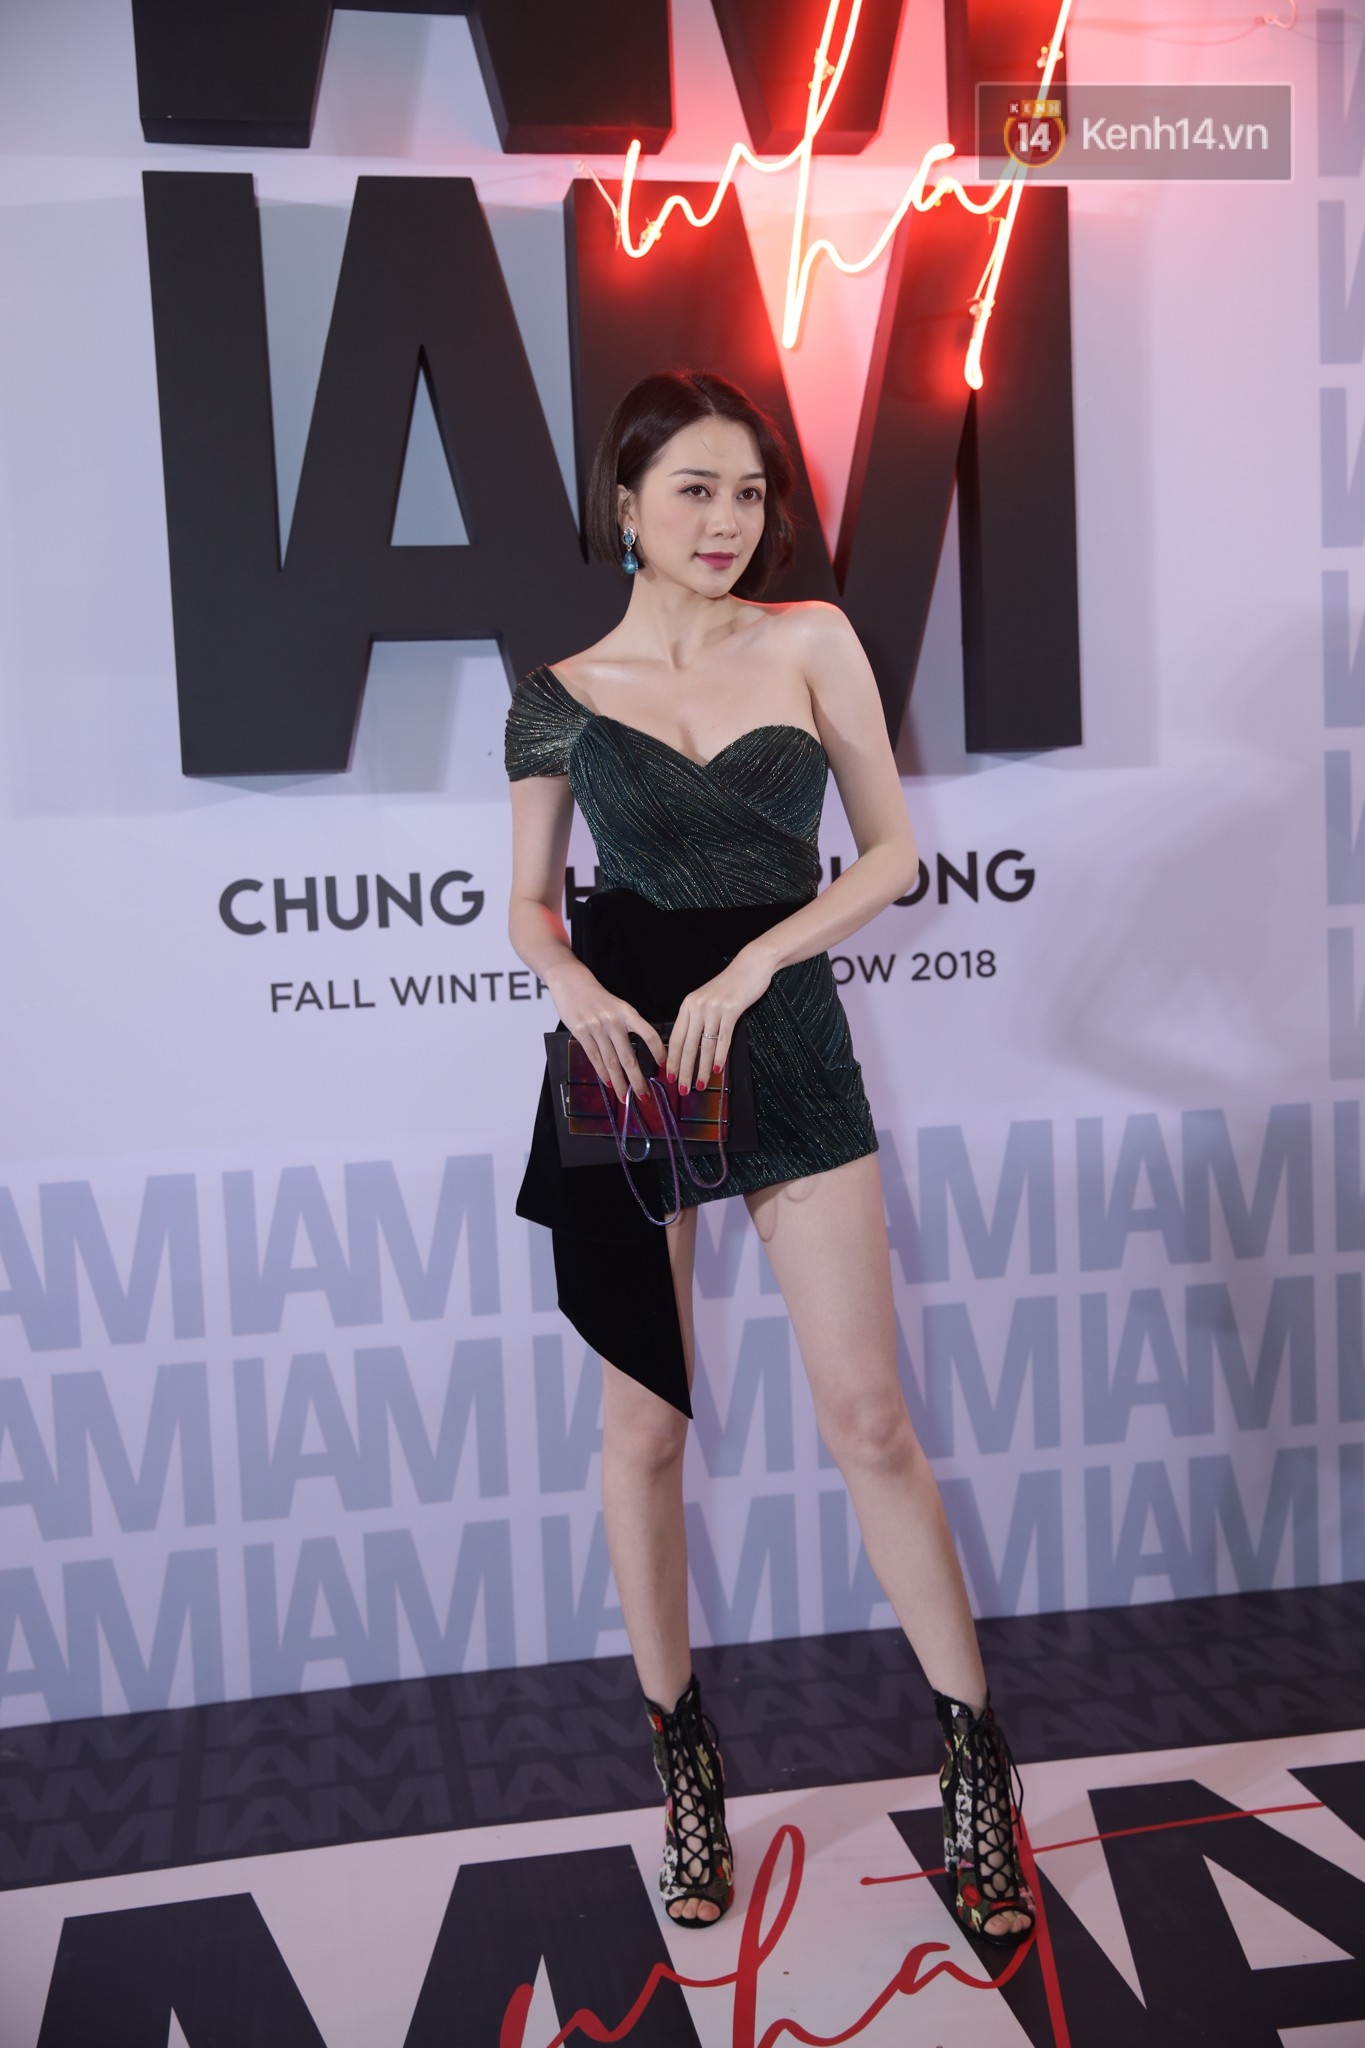 Red carpet Chung Thanh Phong show: It was able to try out strange jewelry, Quỳnh Anh Shyn caught rain like spiders - Photo 32.